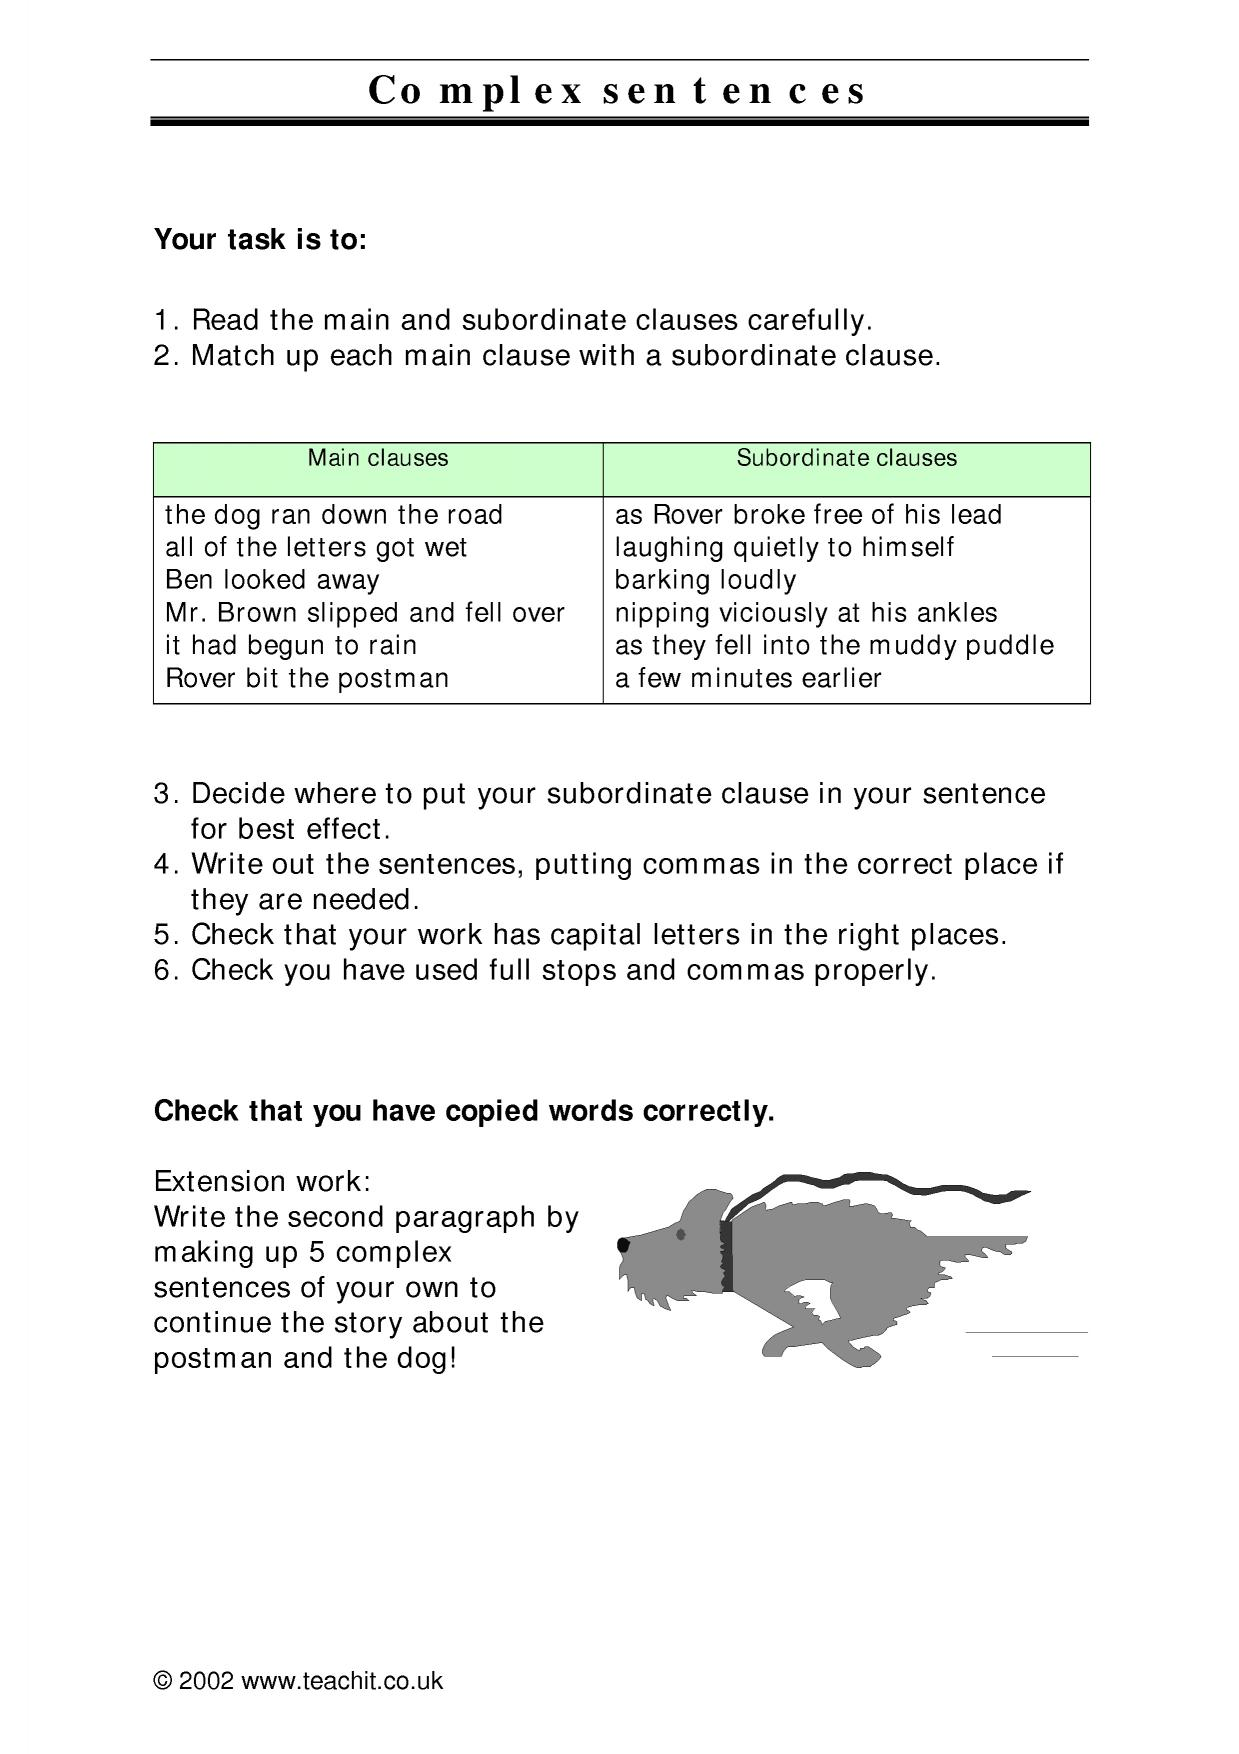 KS3 Sentence construction – Subordinate Clauses Worksheet